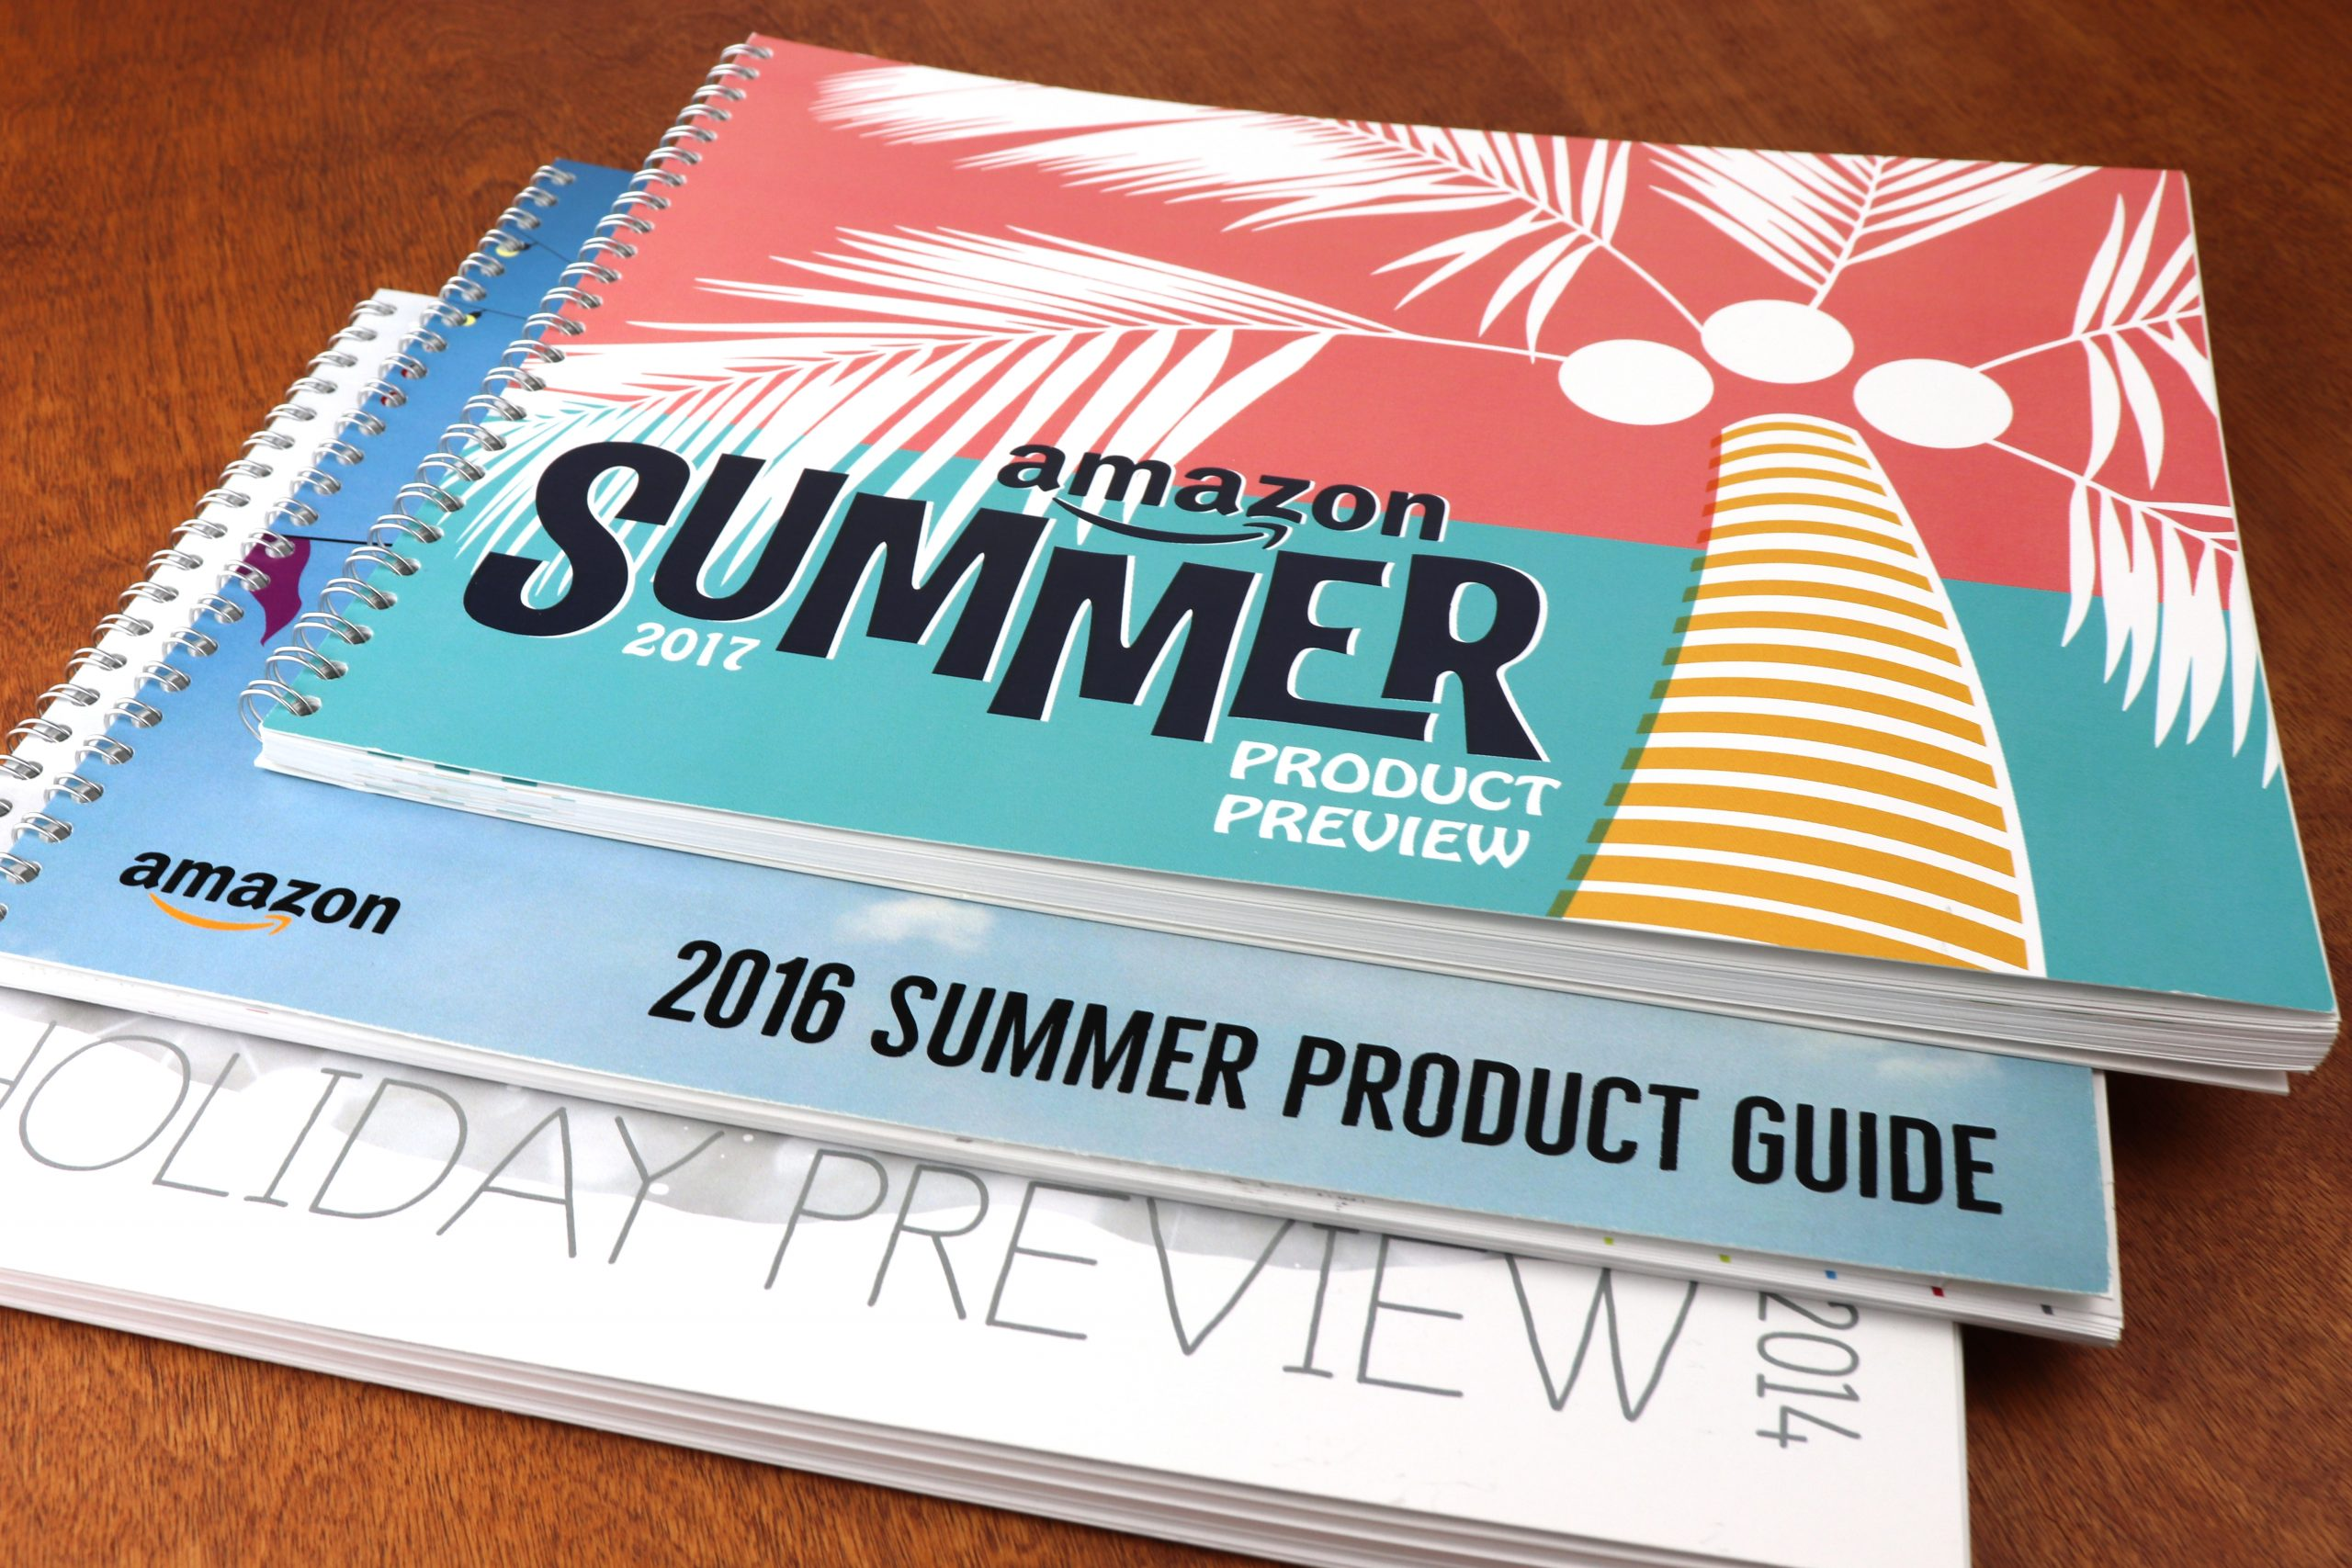 Amazon Summer Preview books